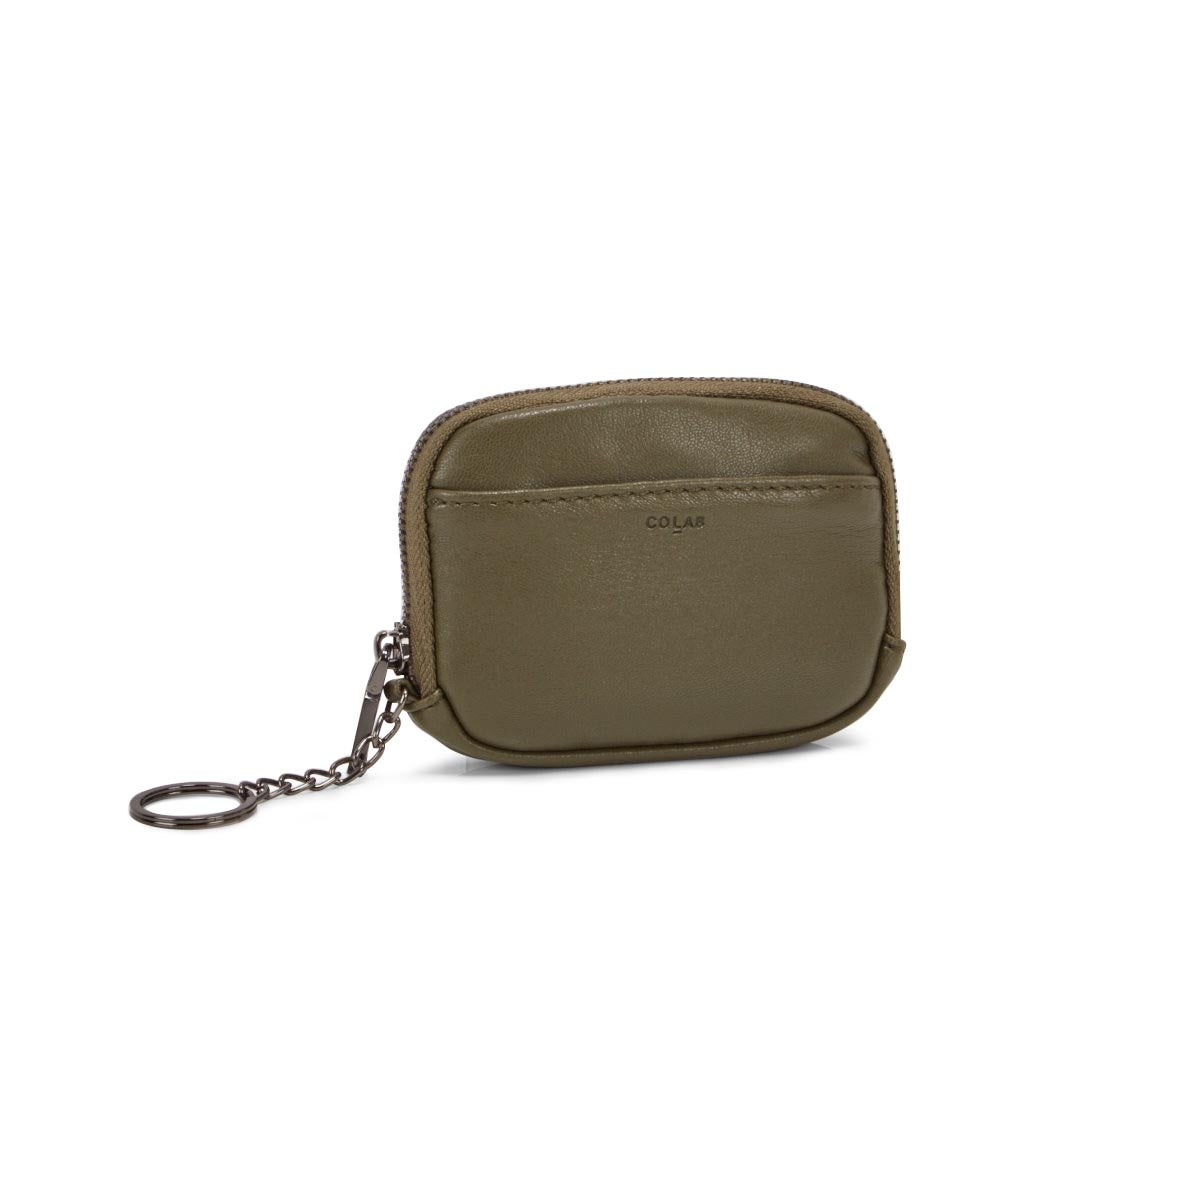 Lds olive zip up wallet